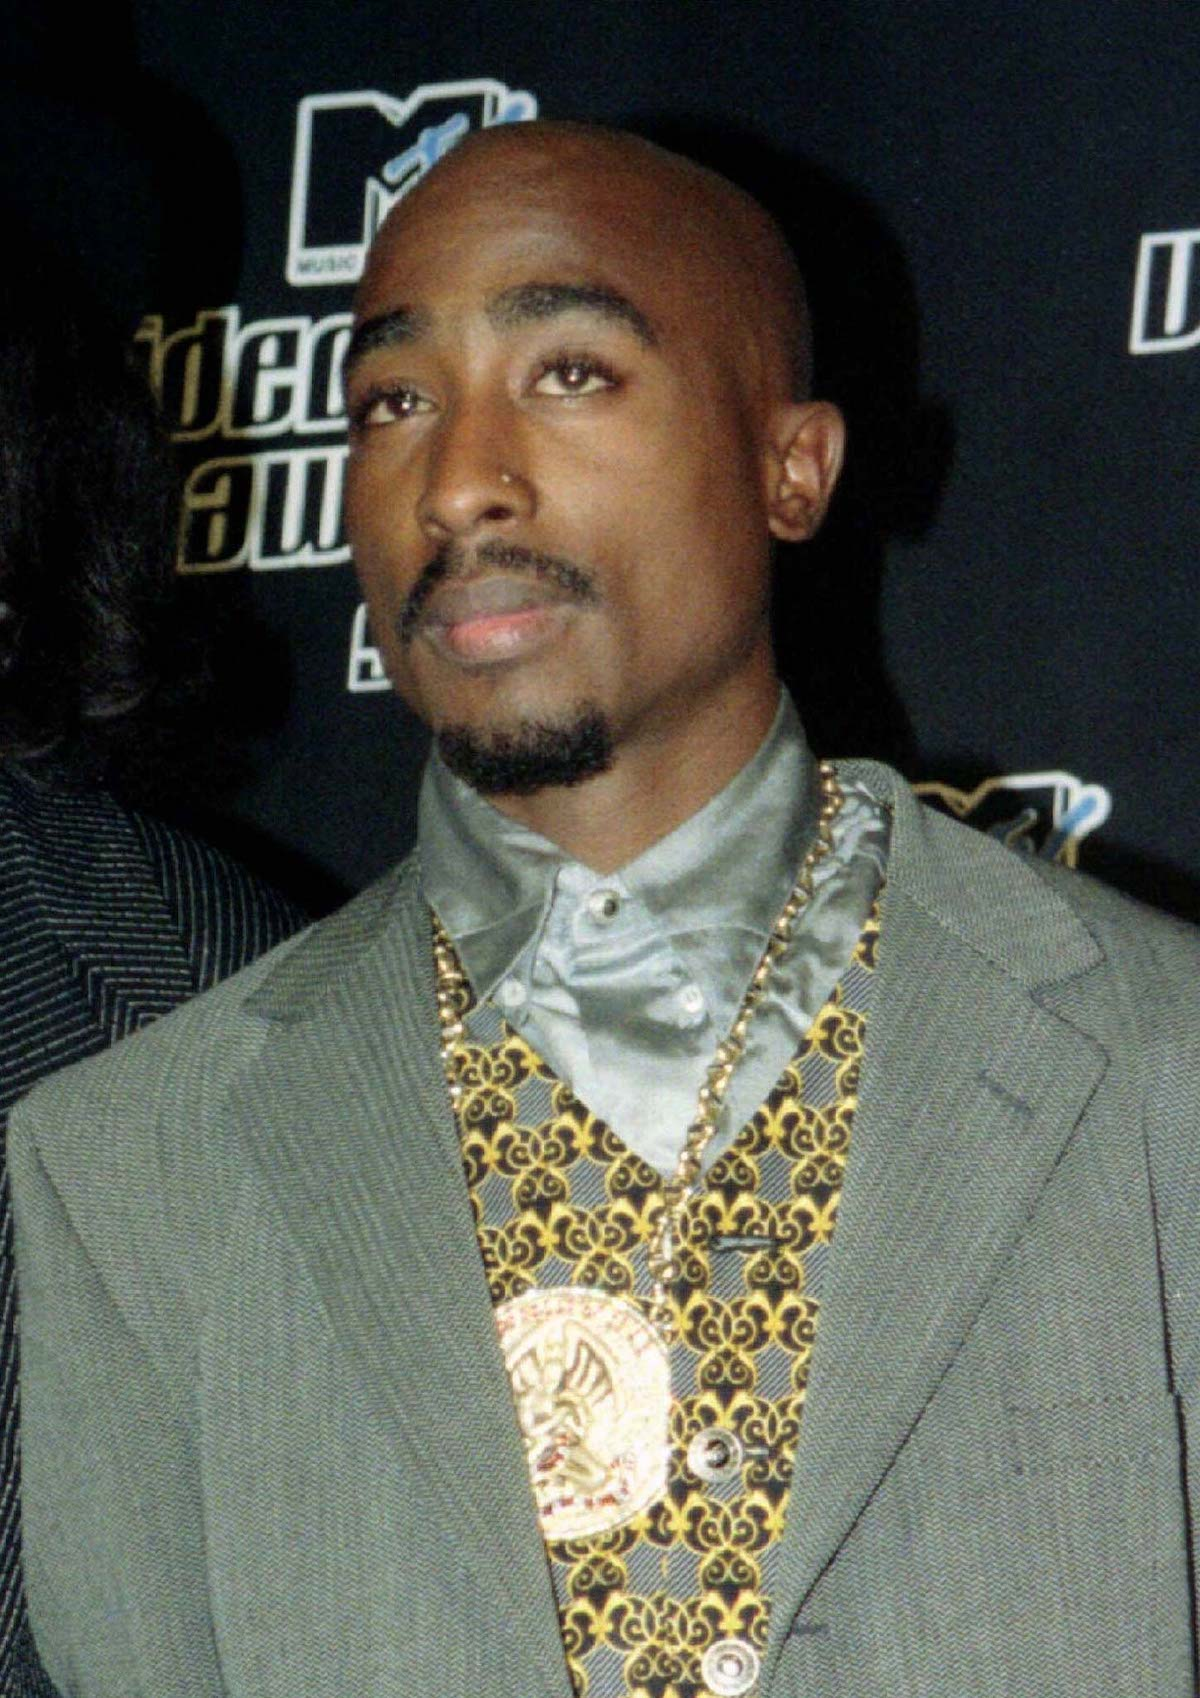 FILE PHOTO 4SEP96 - Rap music star Tupac Shakur died September 13, six days after being shot four times while riding in a car in Las Vegas. Shakur had been in critical condition since he was shot and had a lung removed in one of two operations. Shakur is shown here at the MTV Music Video Awards in New York September 4. Reuters Images/Mike Segar